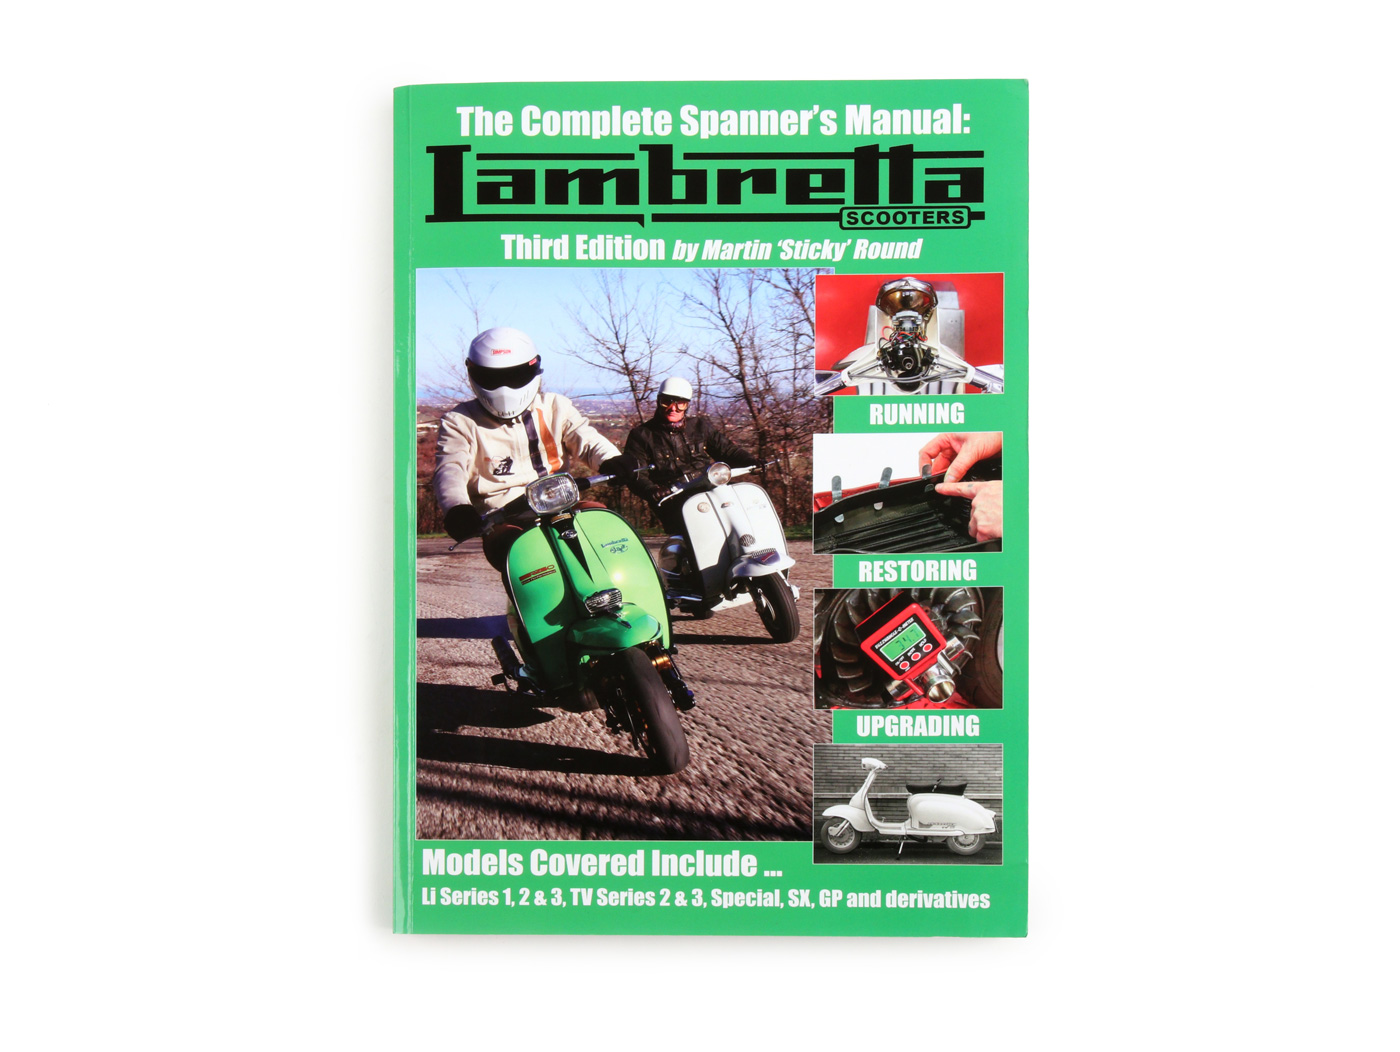 Book -Complete Spanner's Manual Lambretta -Third Edition- by Sticky | Books  | Literature | Scooter Center